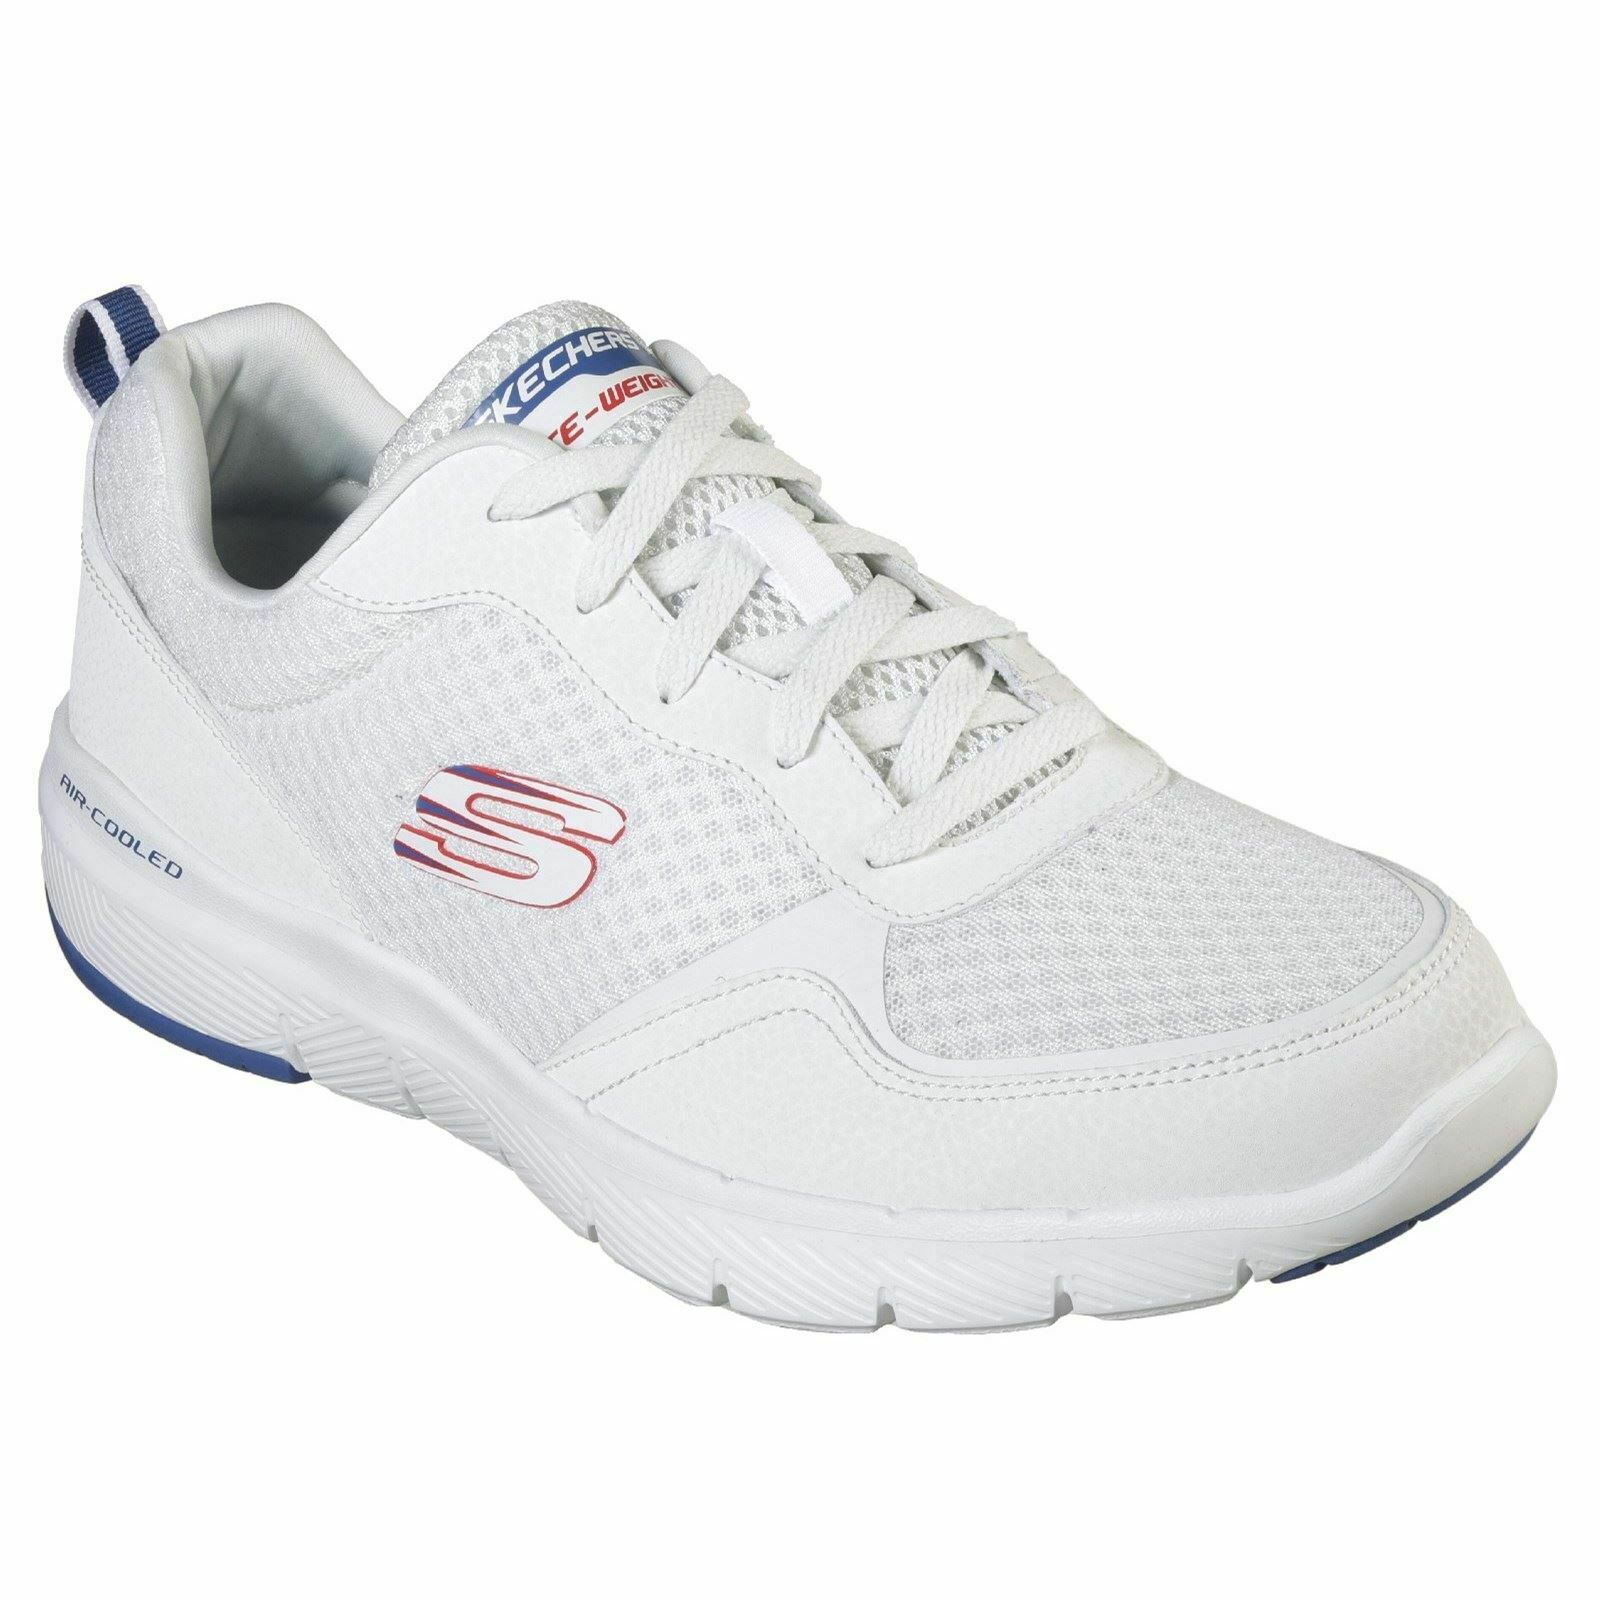 Skechers Mens Flex Advantage 3 Lace Air Cooled Memory Foam White bluee Trainers